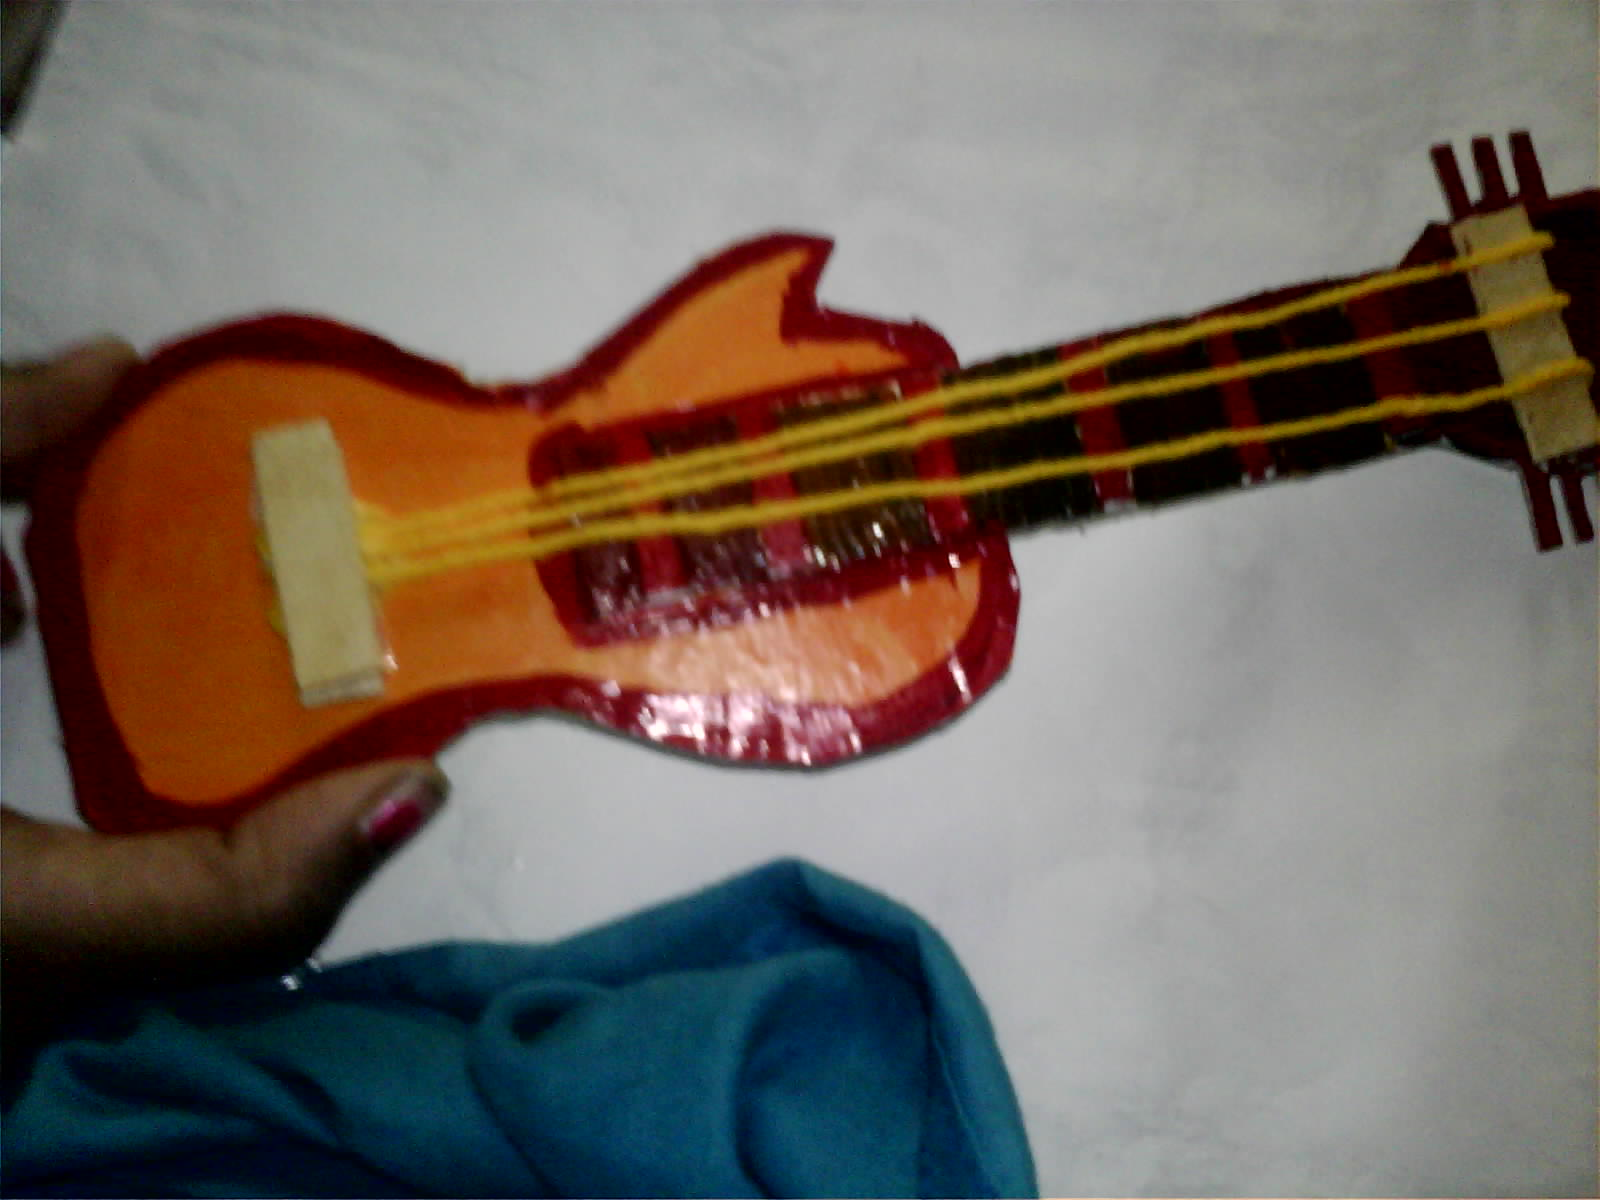 Malini 39 s creationz cardboard guitar how to make for Craft using waste bangles